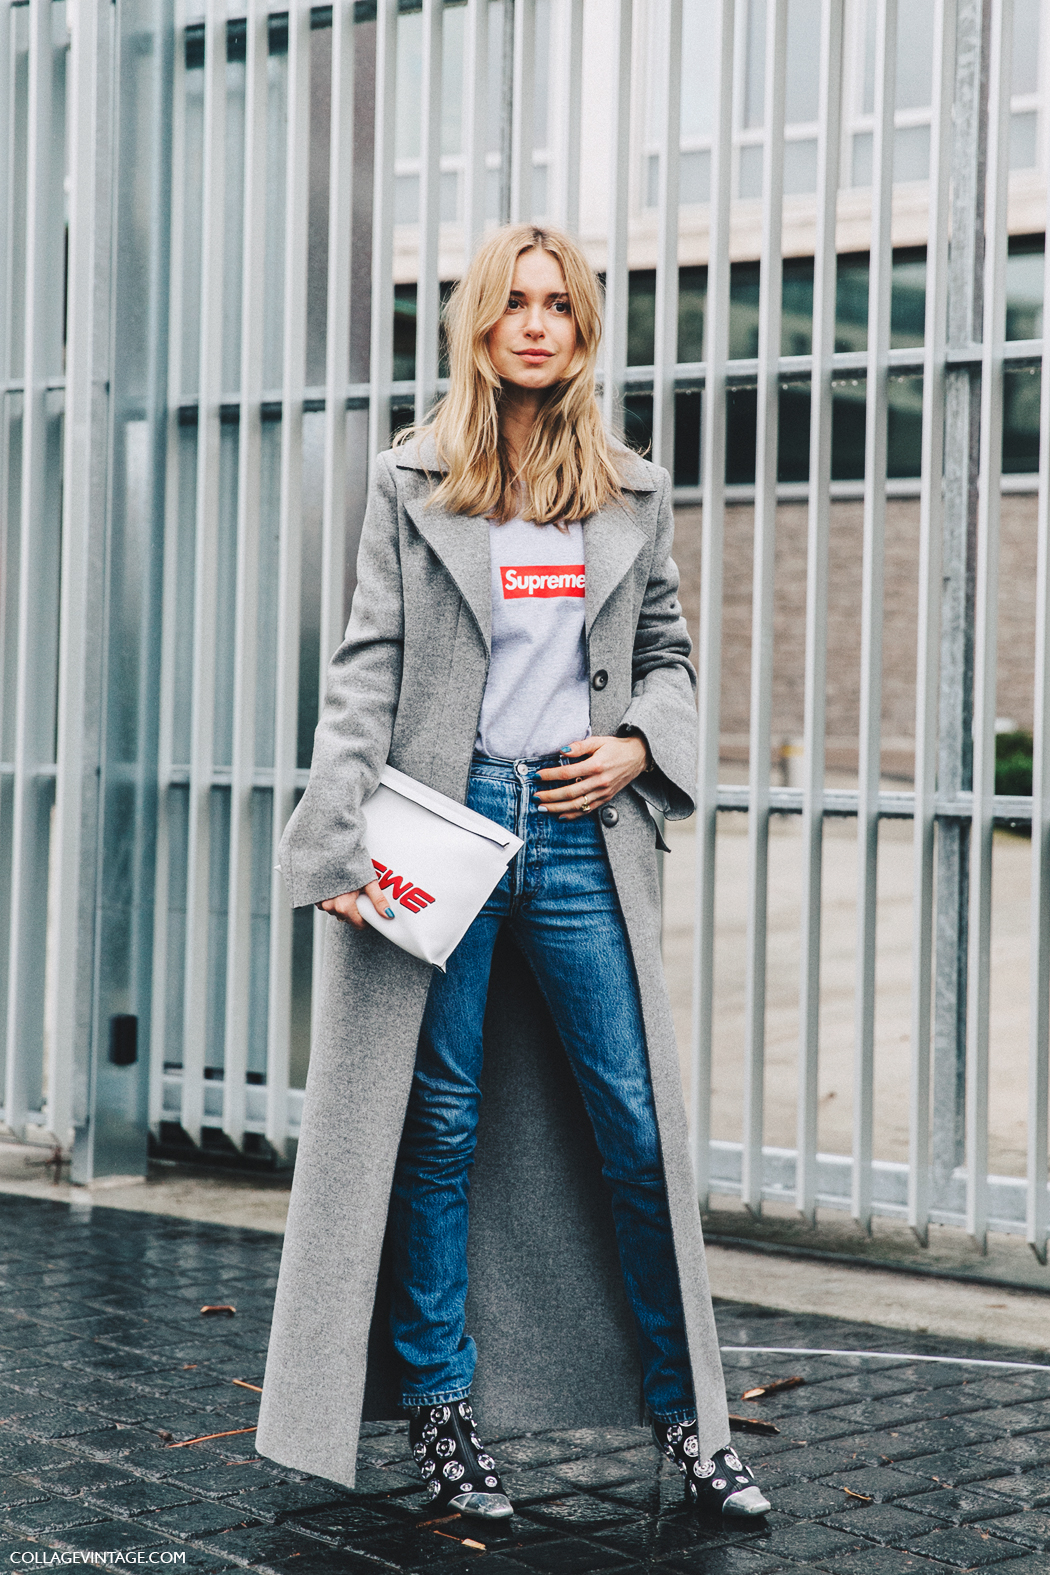 PFW-Paris_Fashion_Week_Fall_2016-Street_Style-Collage_Vintage-Pernille_Teisbaek-Long_Coat-Loewe_Cluth-Supreme_top-2